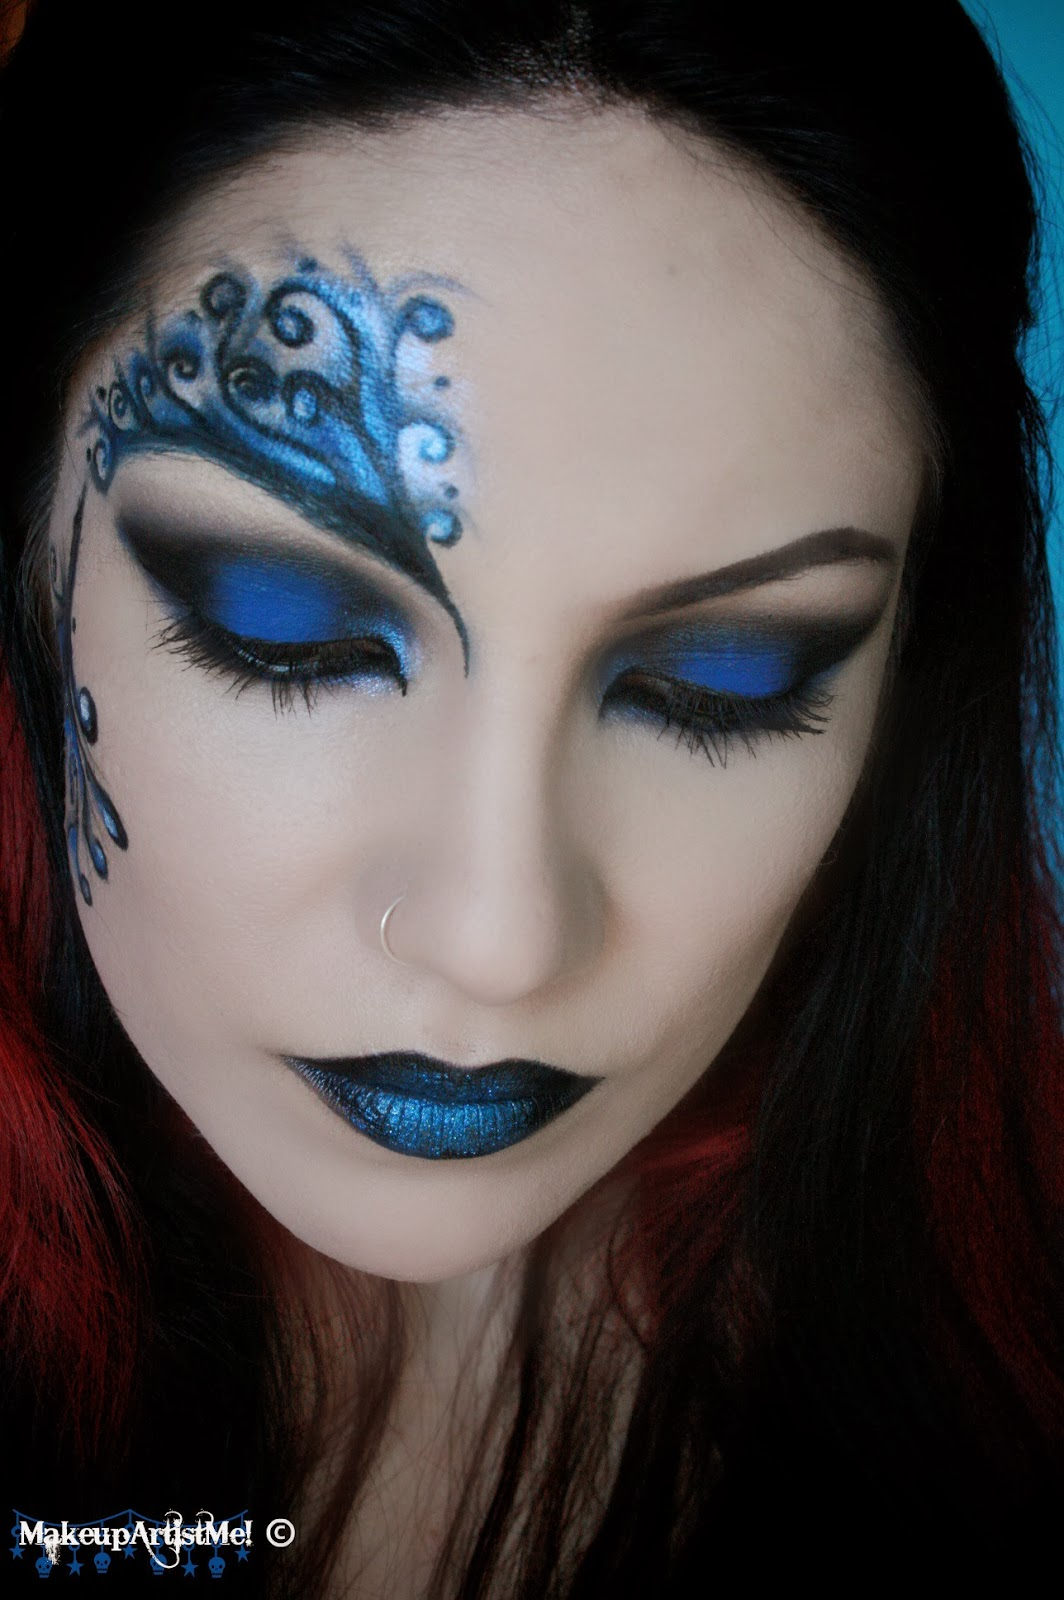 Make Up Fashion And 50 Shades Of Pink: Make-up Artist Me!: Blue Secret- Blue Masquerade Makeup